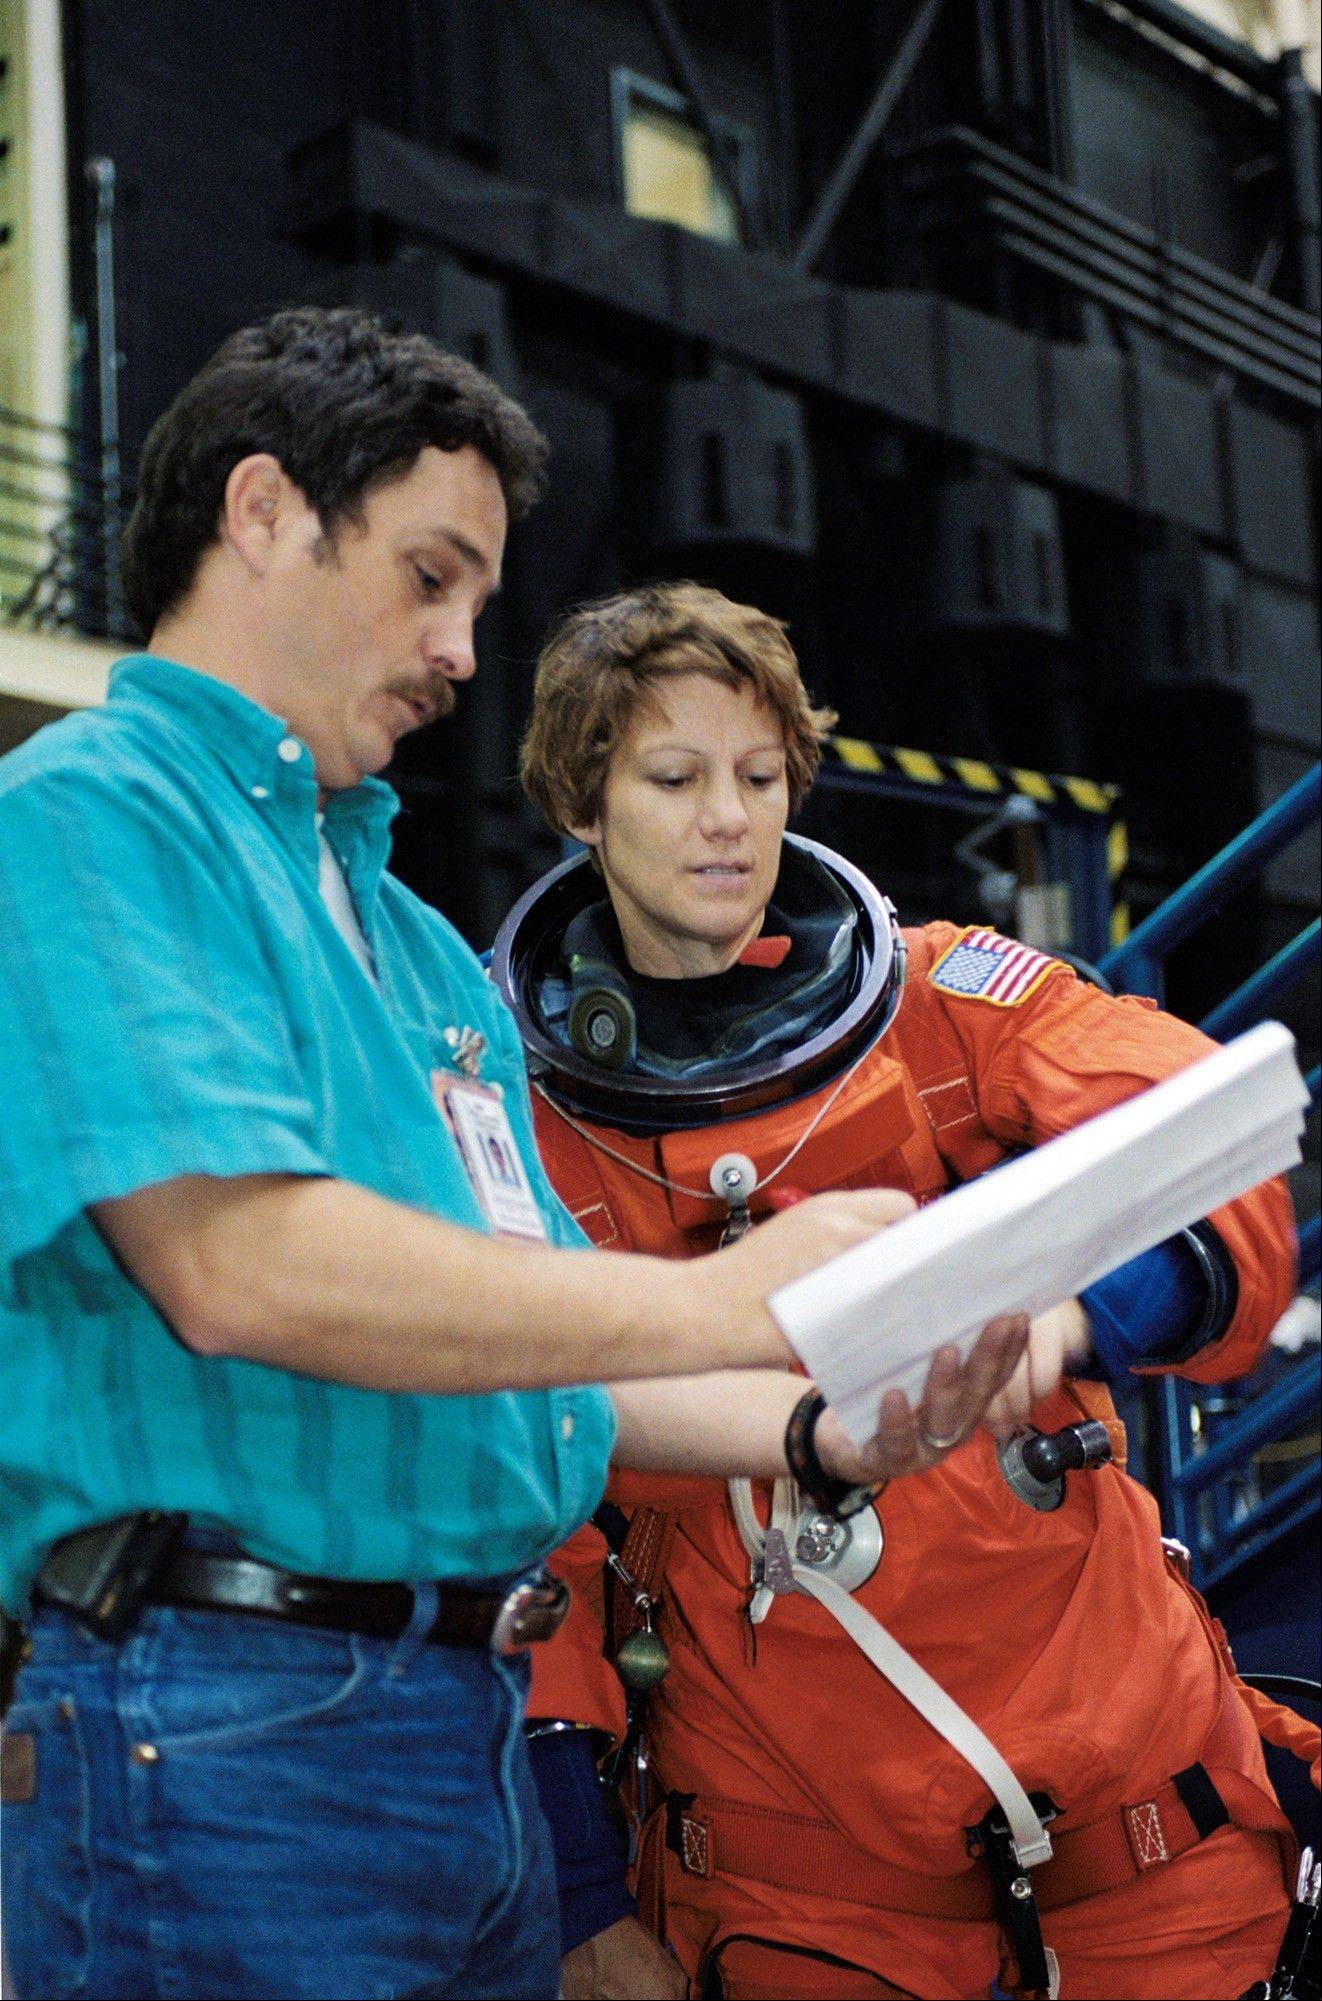 In this Sept. 12, 2002 file picture, astronaut Eileen Collins, commander for the space shuttle Discovery mission scheduled for May 2005 launch, is briefed by crew trainer Ken Trujillo during a training session in the Space Vehicle Mockup Facility at Johnson Space Center in Houston.